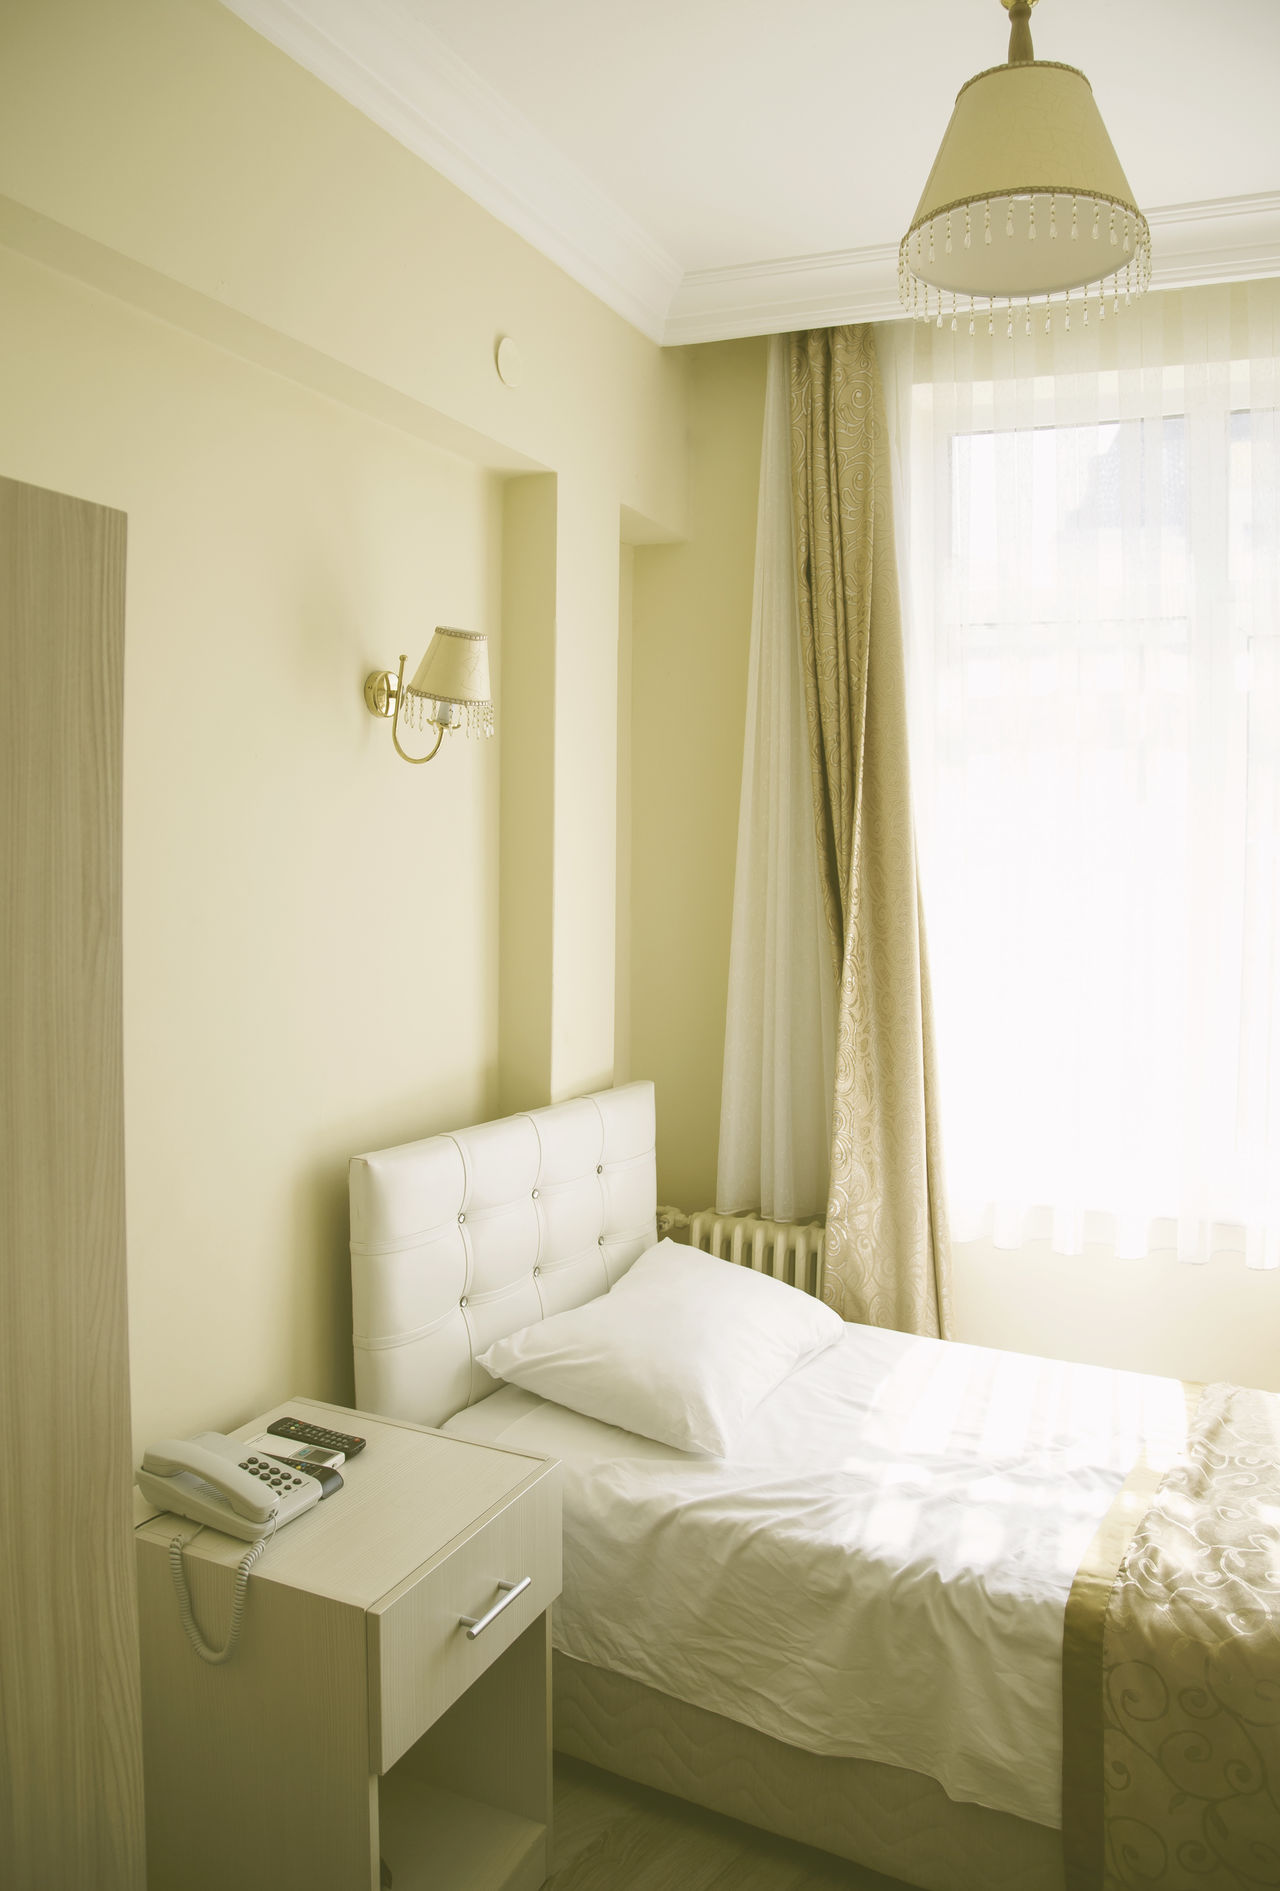 Bed Bedroom Comfortable Curtain Daylight Domestic Room Empty Home Home Interior Hotel Hotel Room Indoors  Morning Pattern Relaxing Single Small Telephone Wall